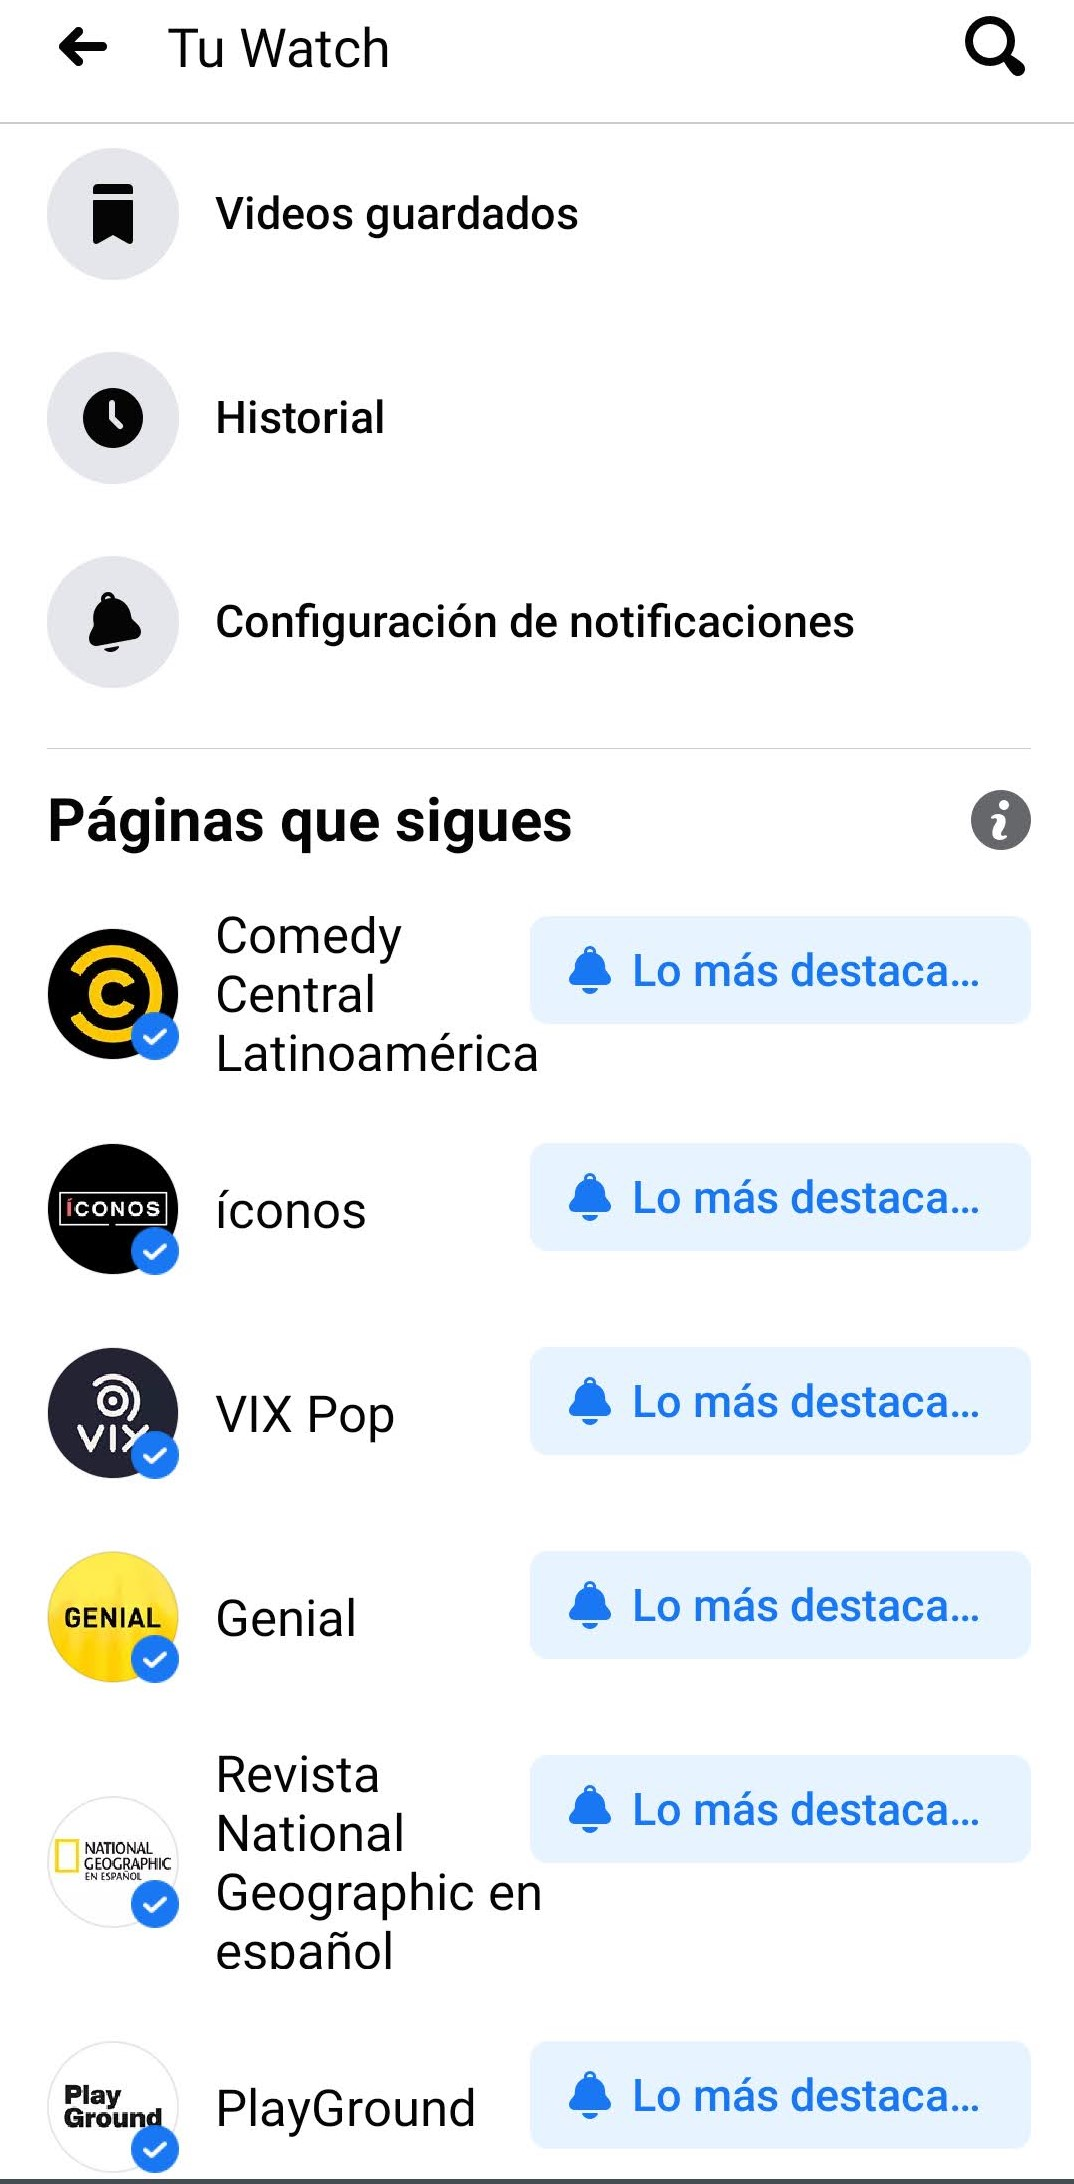 Cómo funciona Facebook Watch